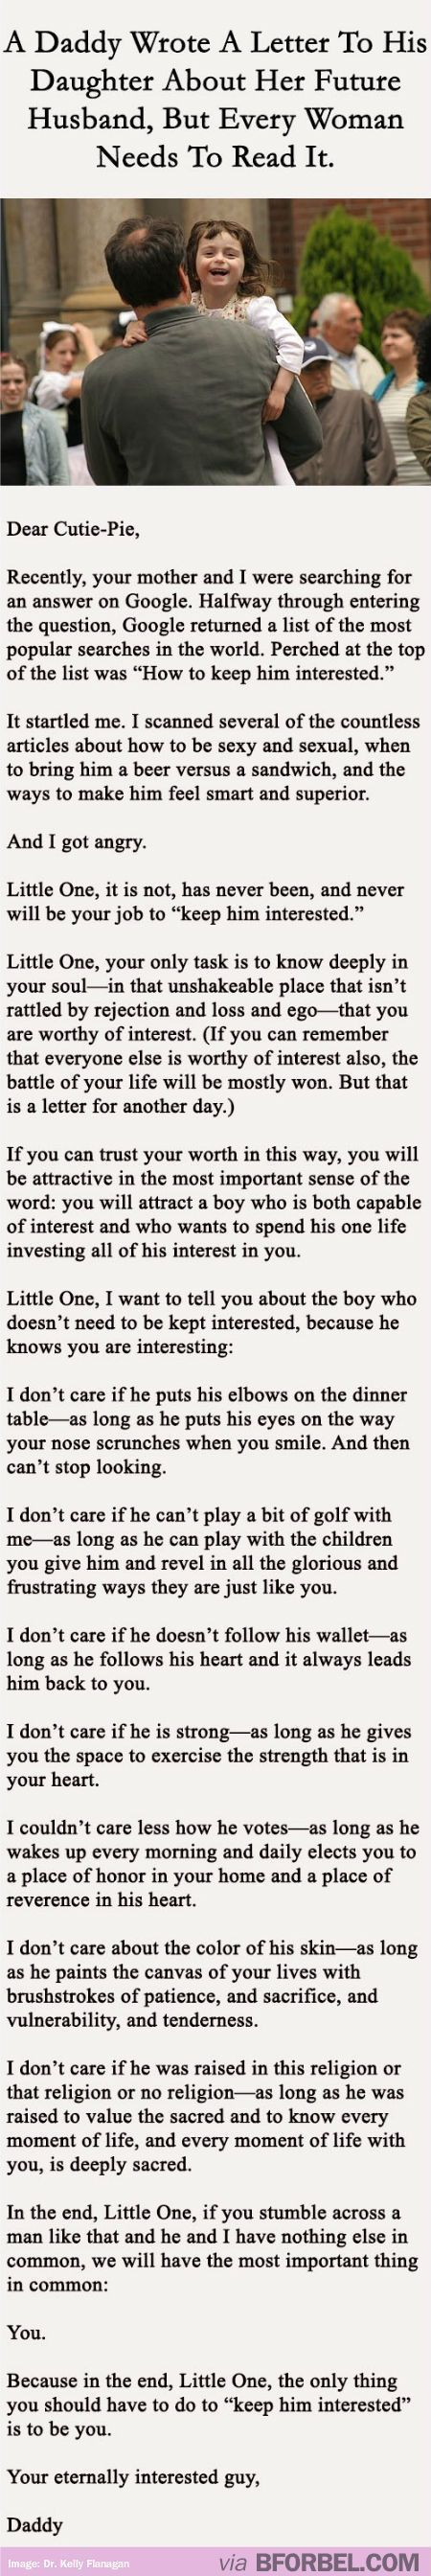 """It really annoys me that he refers to her as """"little one"""" so many times, once would've gotten the point across. Otherwise, it's good words for all the insecure little girls out there (and the bigger insecure girls too)::"""